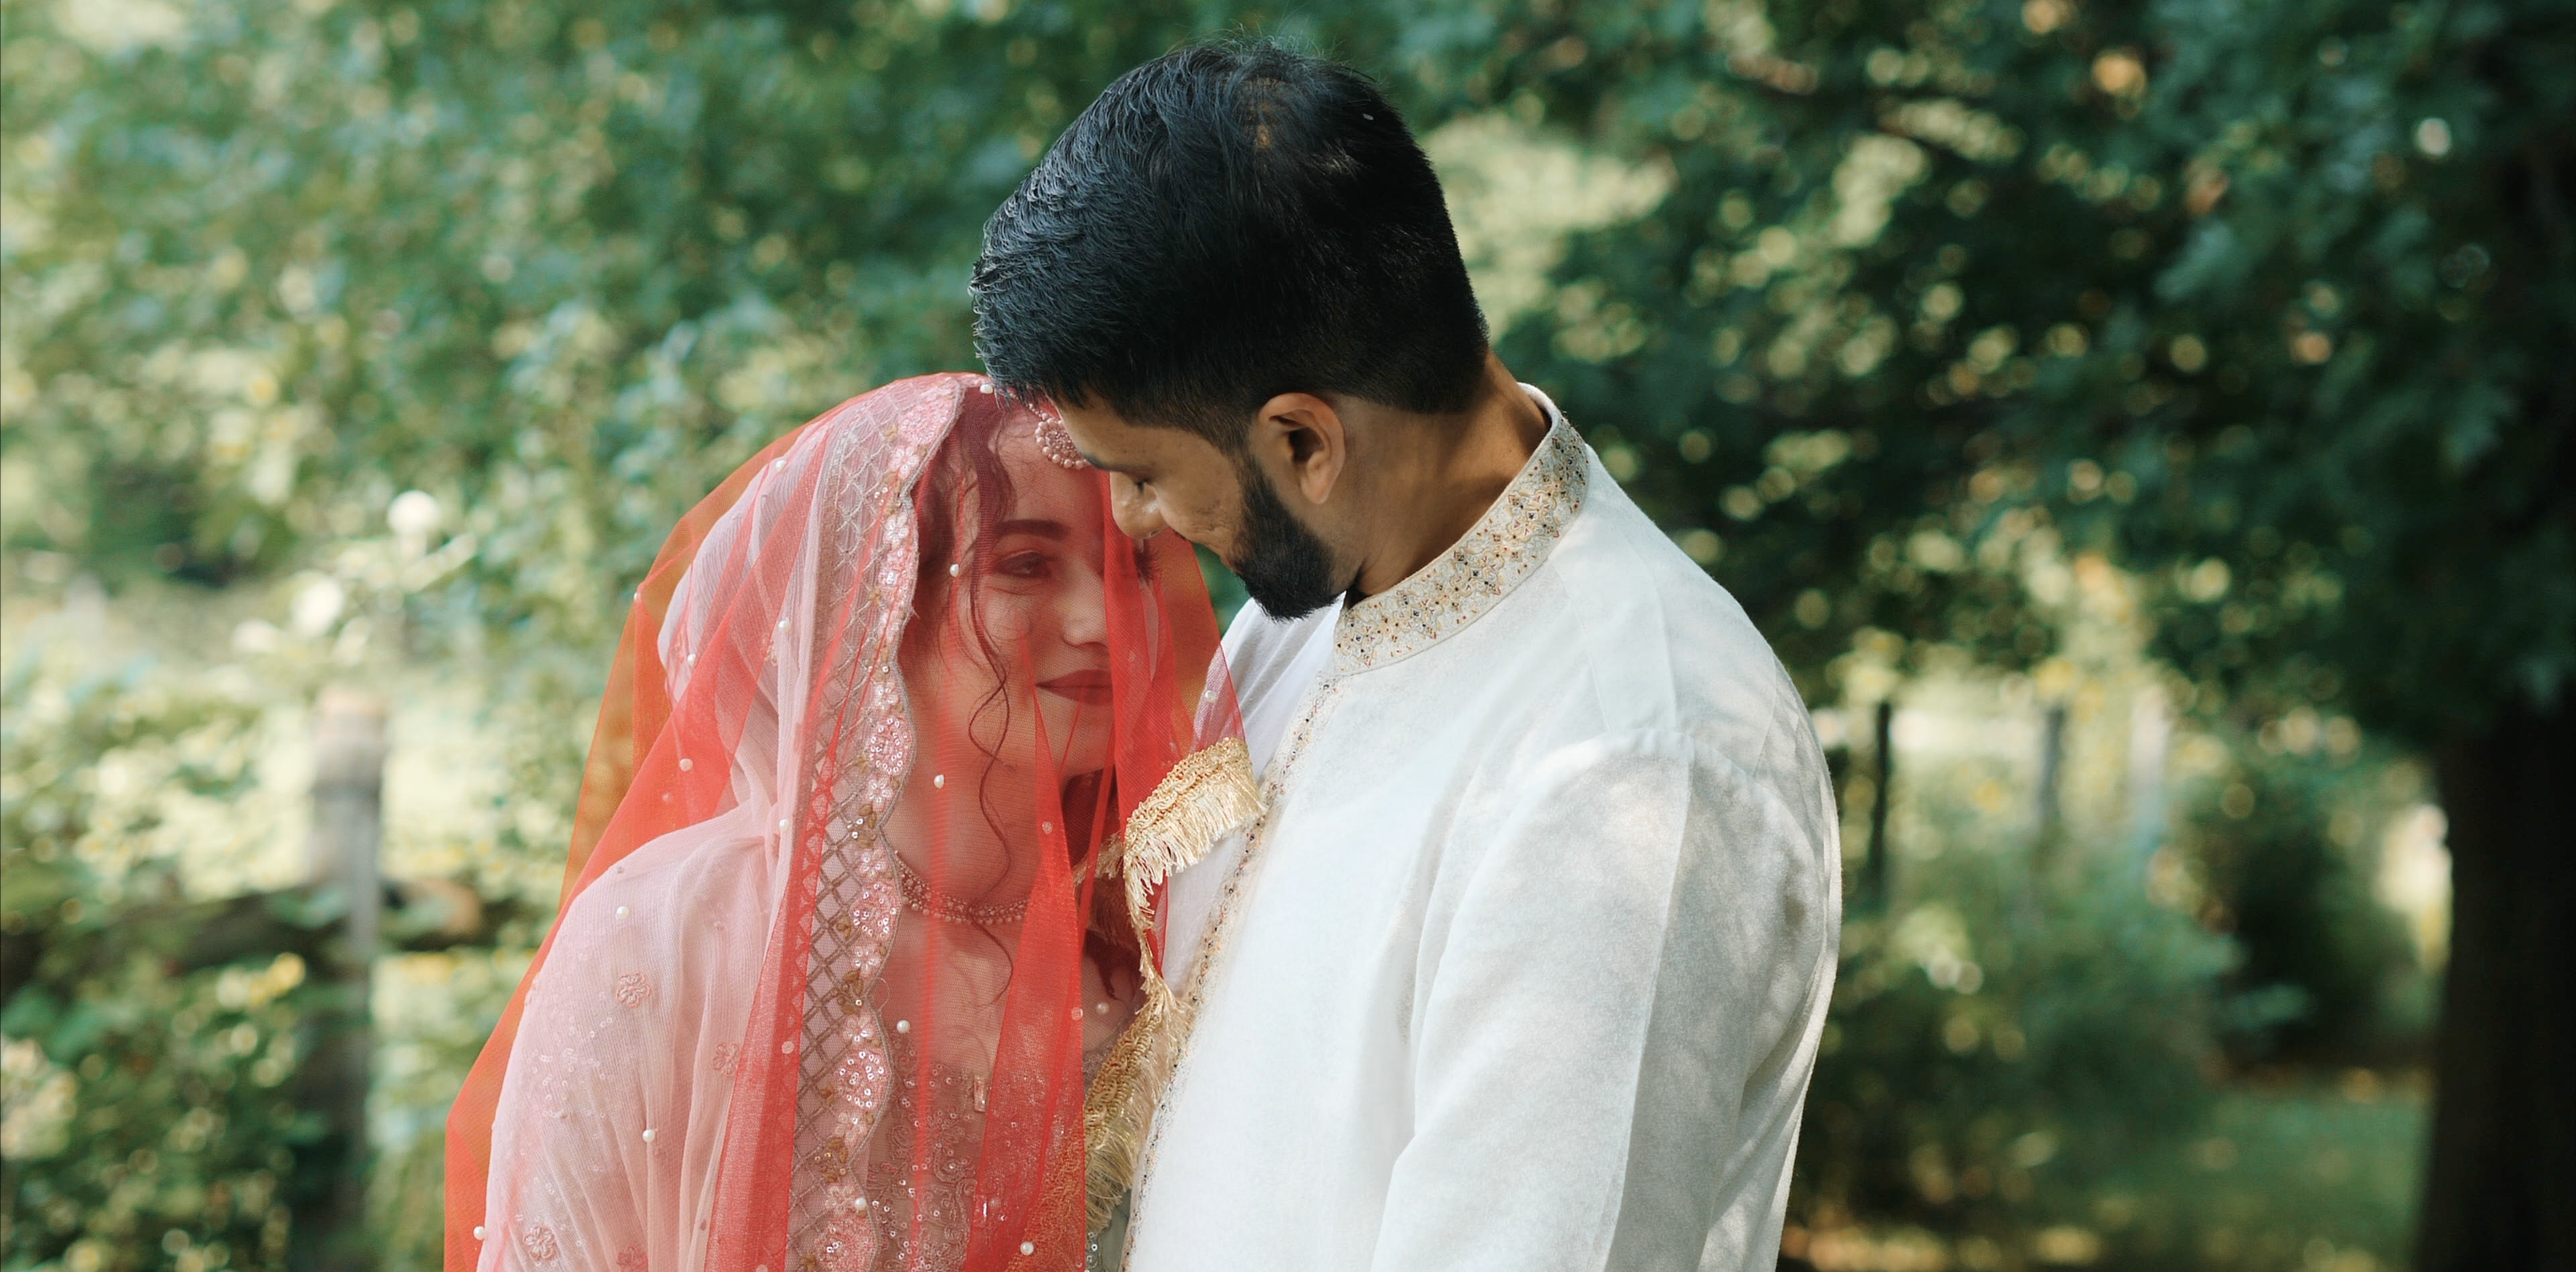 Aisha + Wasif | Brooklyn Park, Minnesota | Minneapolis Marriott Northwest